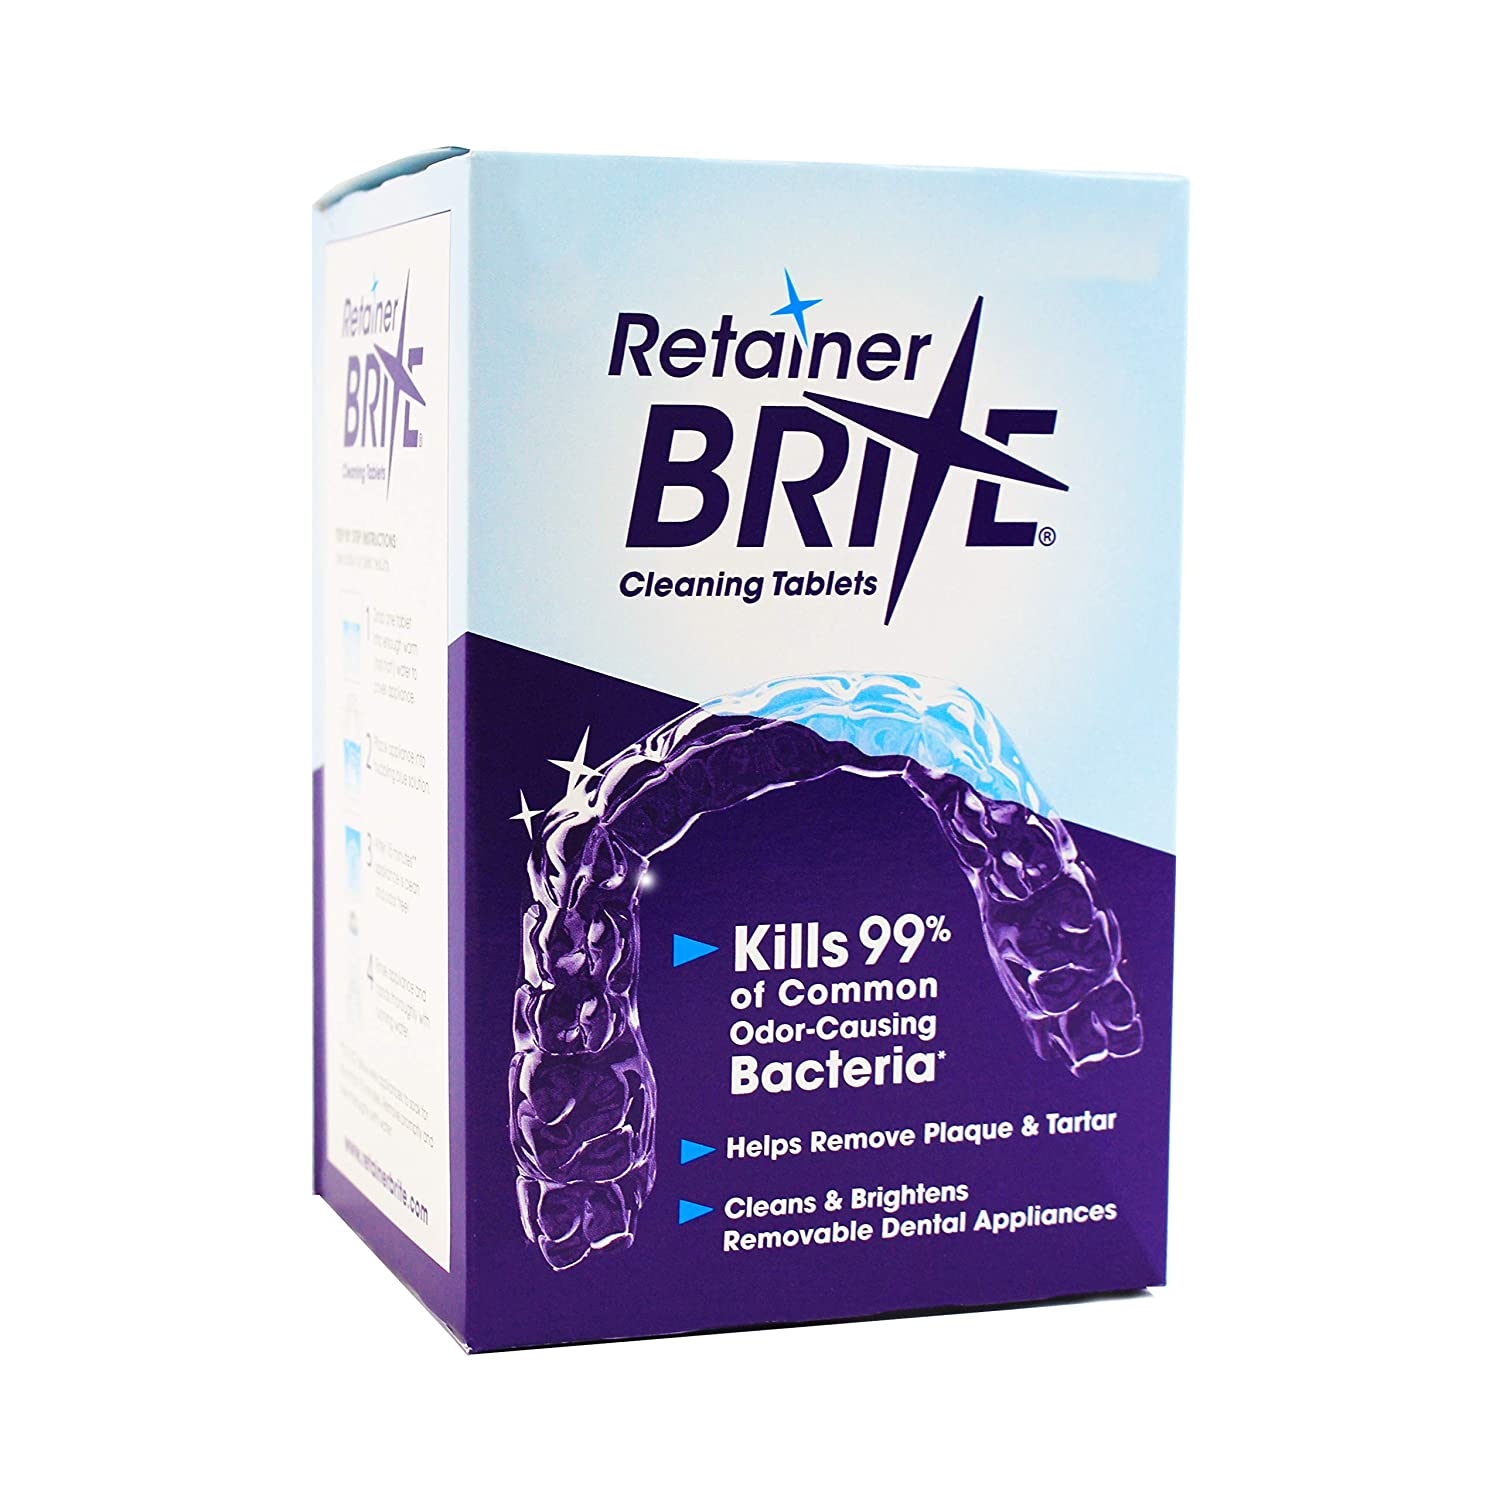 Retainer Brite Tablets for Cleaner Retainers and Dental Appliances - 96 Count : Beauty